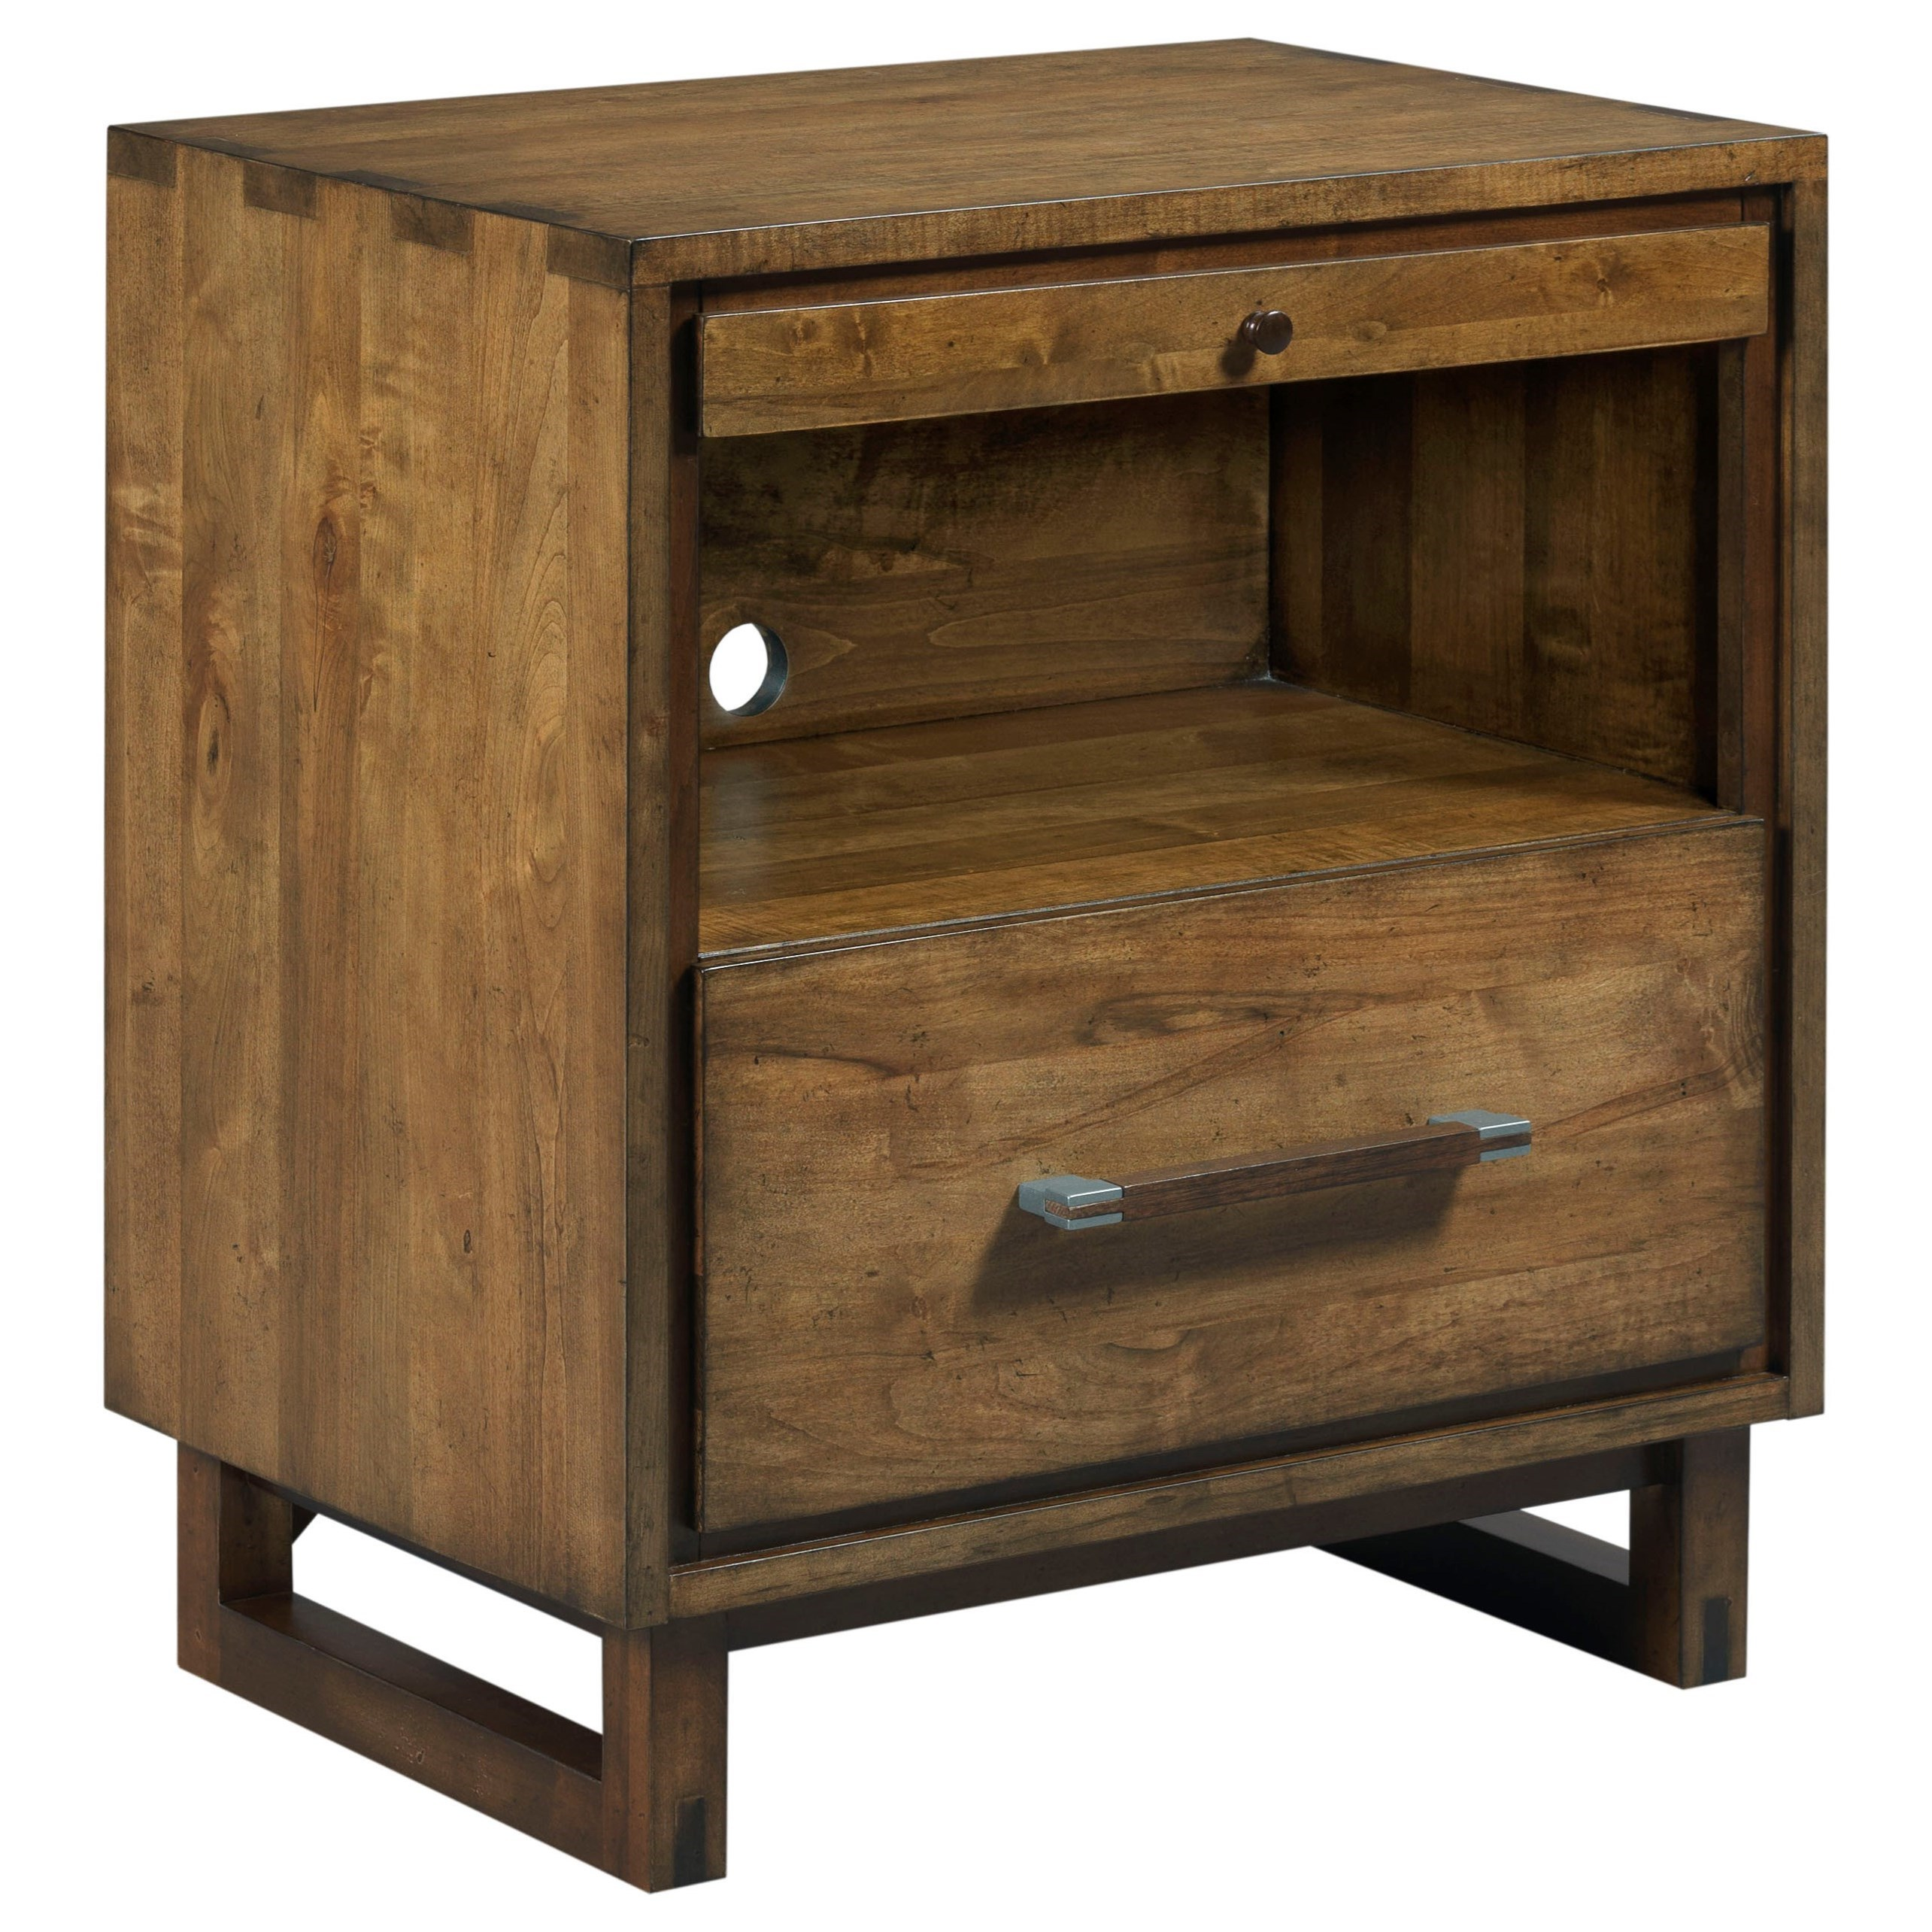 Cabinetmaker Modern Craftsman Nightstand With Pull Out Shelf And Night Light